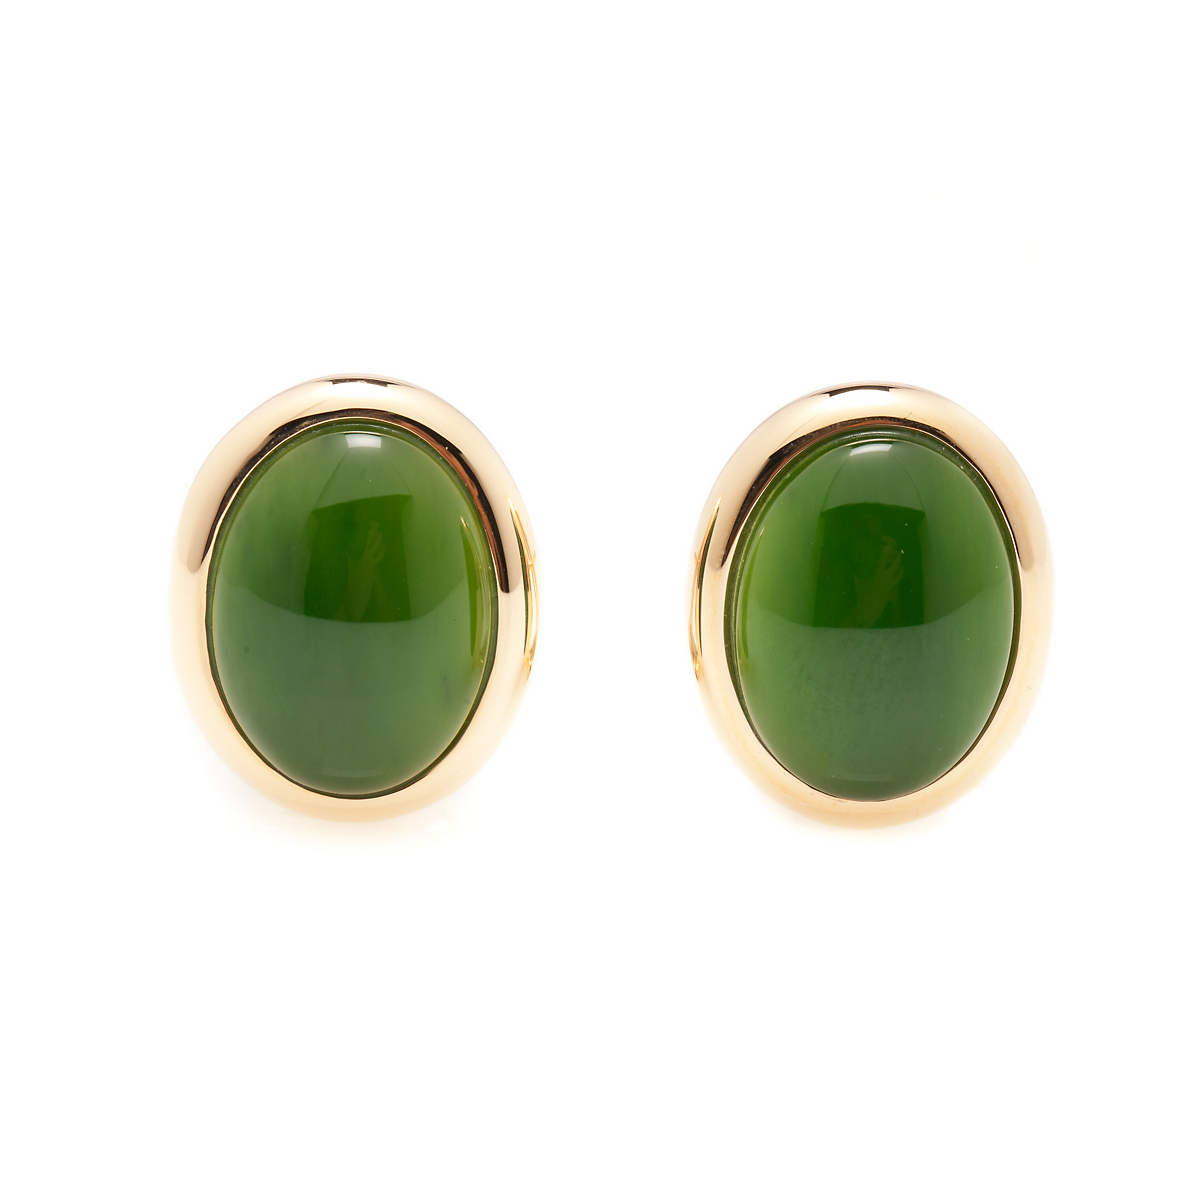 Gump's Green Nephrite Jade Earrings